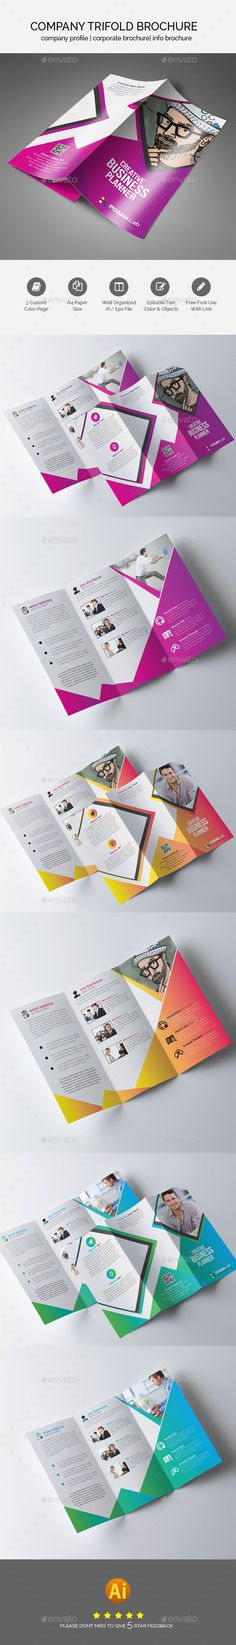 Business Trifold Brochure — Vector EPS #a4 #free • Available here → https://graphicriver.net/item/business-trifold-brochure/17756817?ref=pxcr